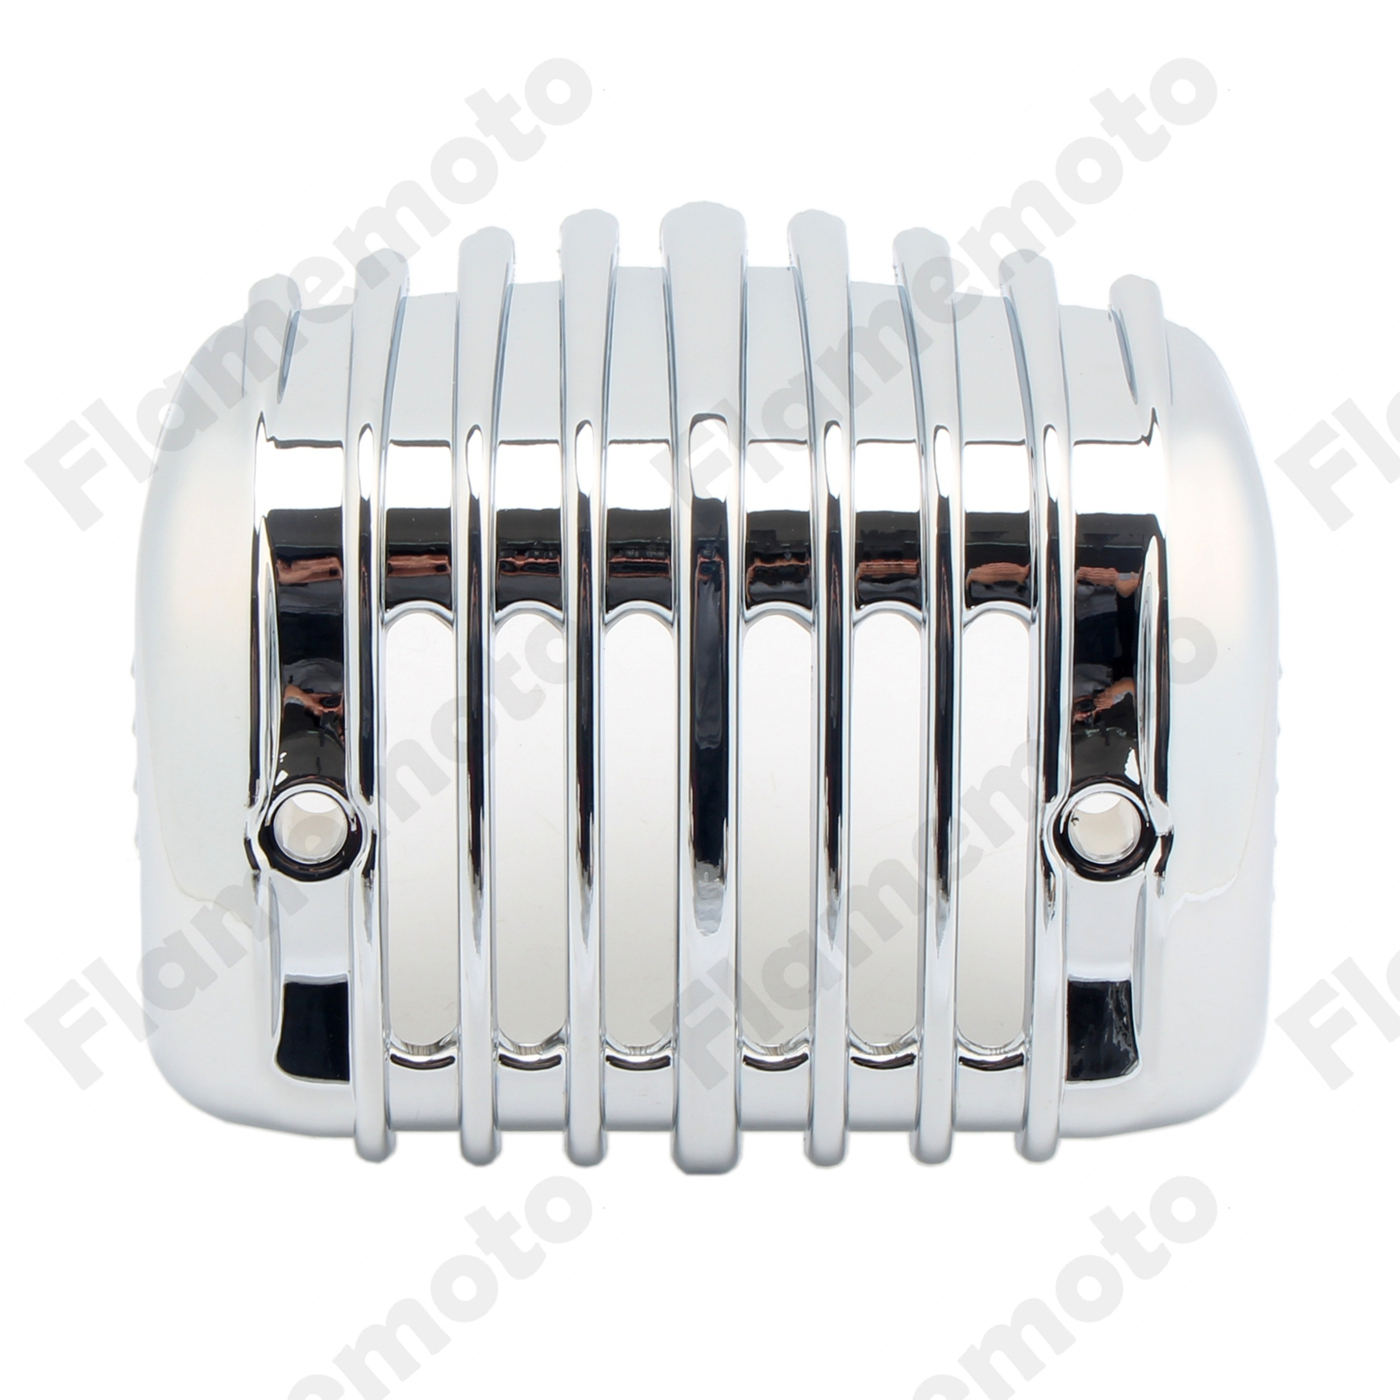 Motorcycle Parts Chrome Voltage Regulator Cover For Harley Heritage Softail Classic FLSTC 2001 2002 2003 2004 2005 2006-2017 free shipping new front fender tip light red lens for flstc heritage softail classic electra glide